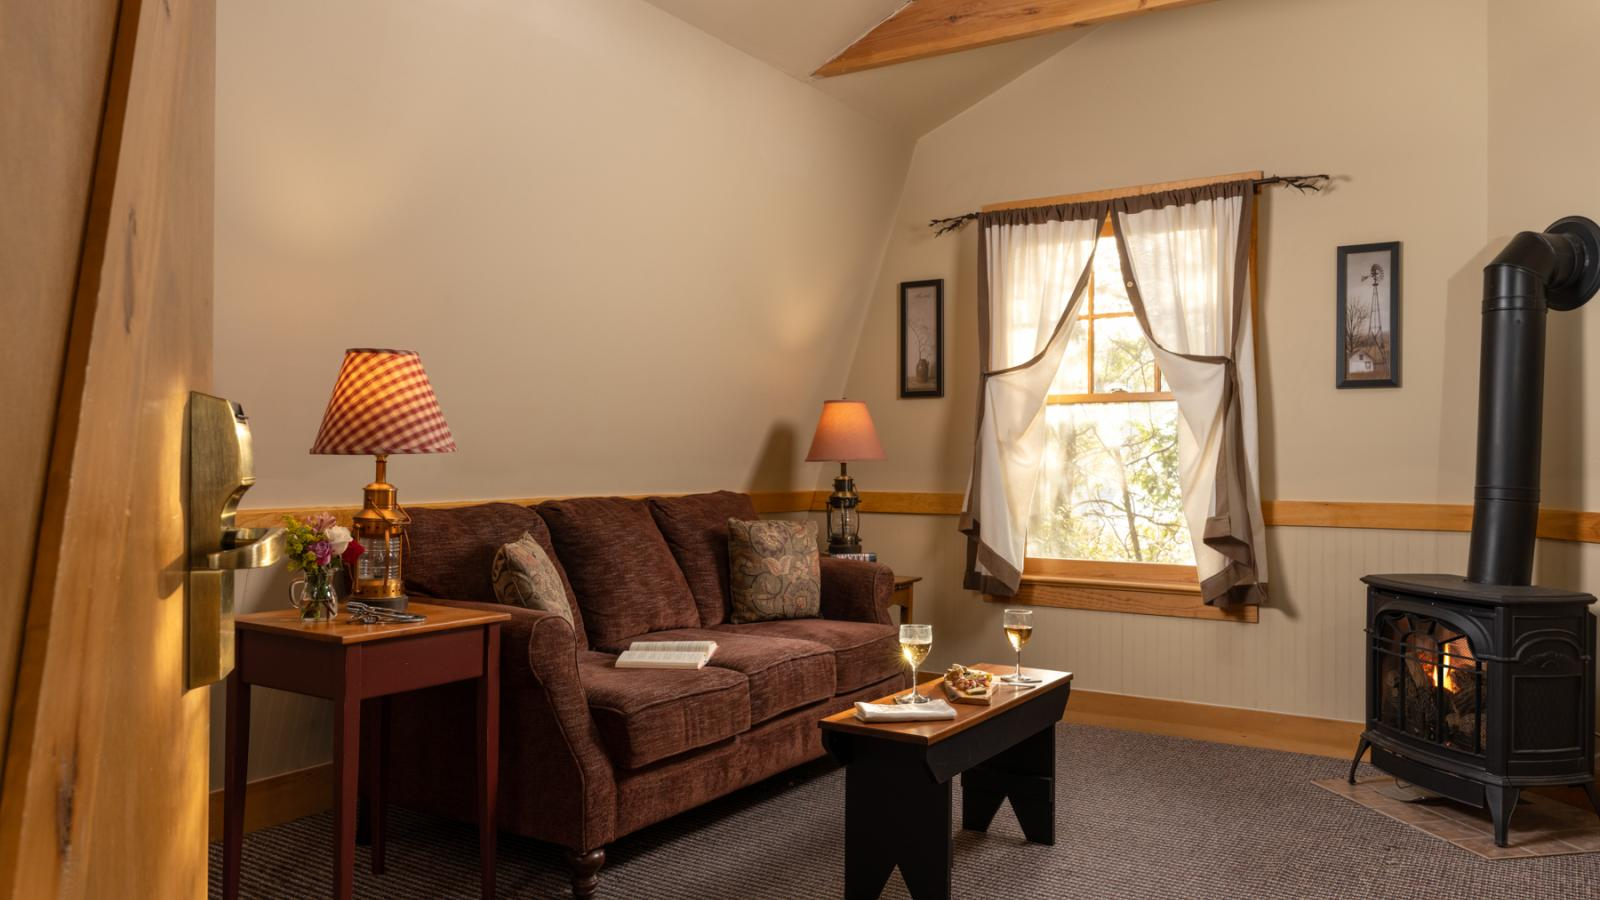 B&B Suite with Fireplace